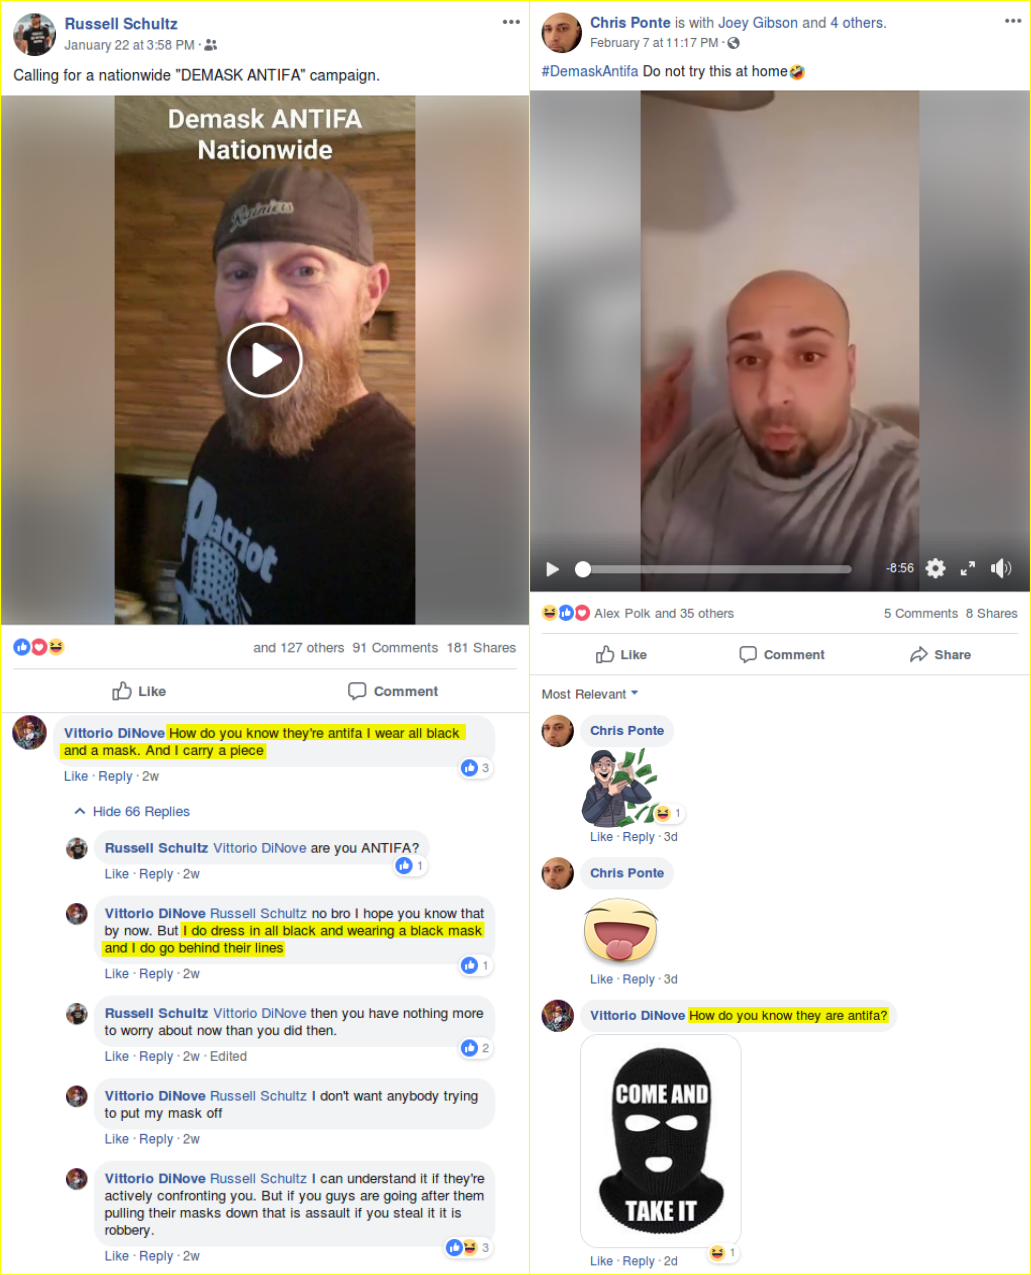 Kim Costello argues about dishonest tactics with Patriot Prayer followers